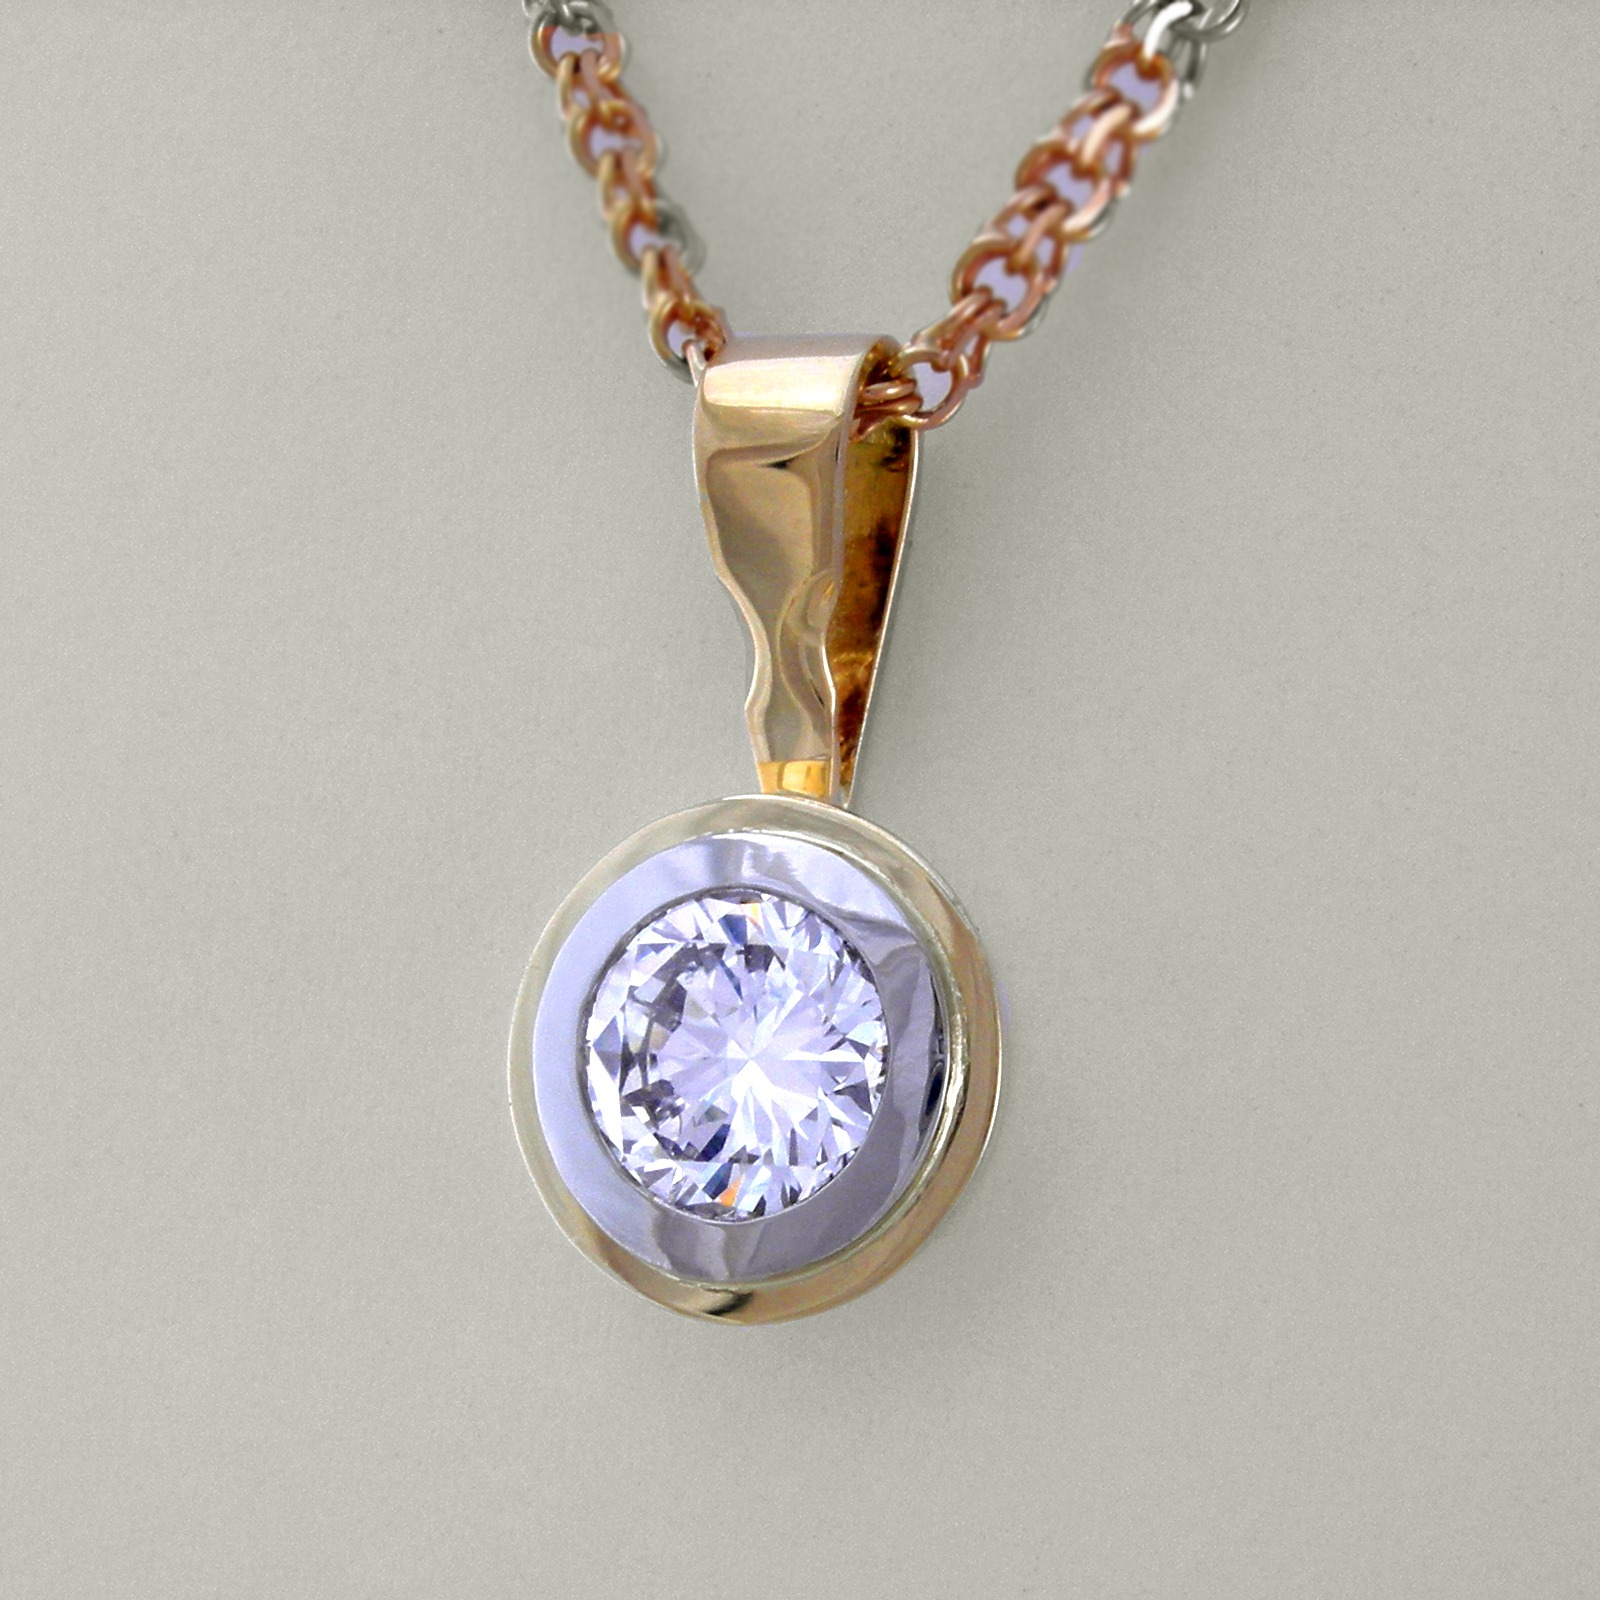 Striking Diamond Pendant 7